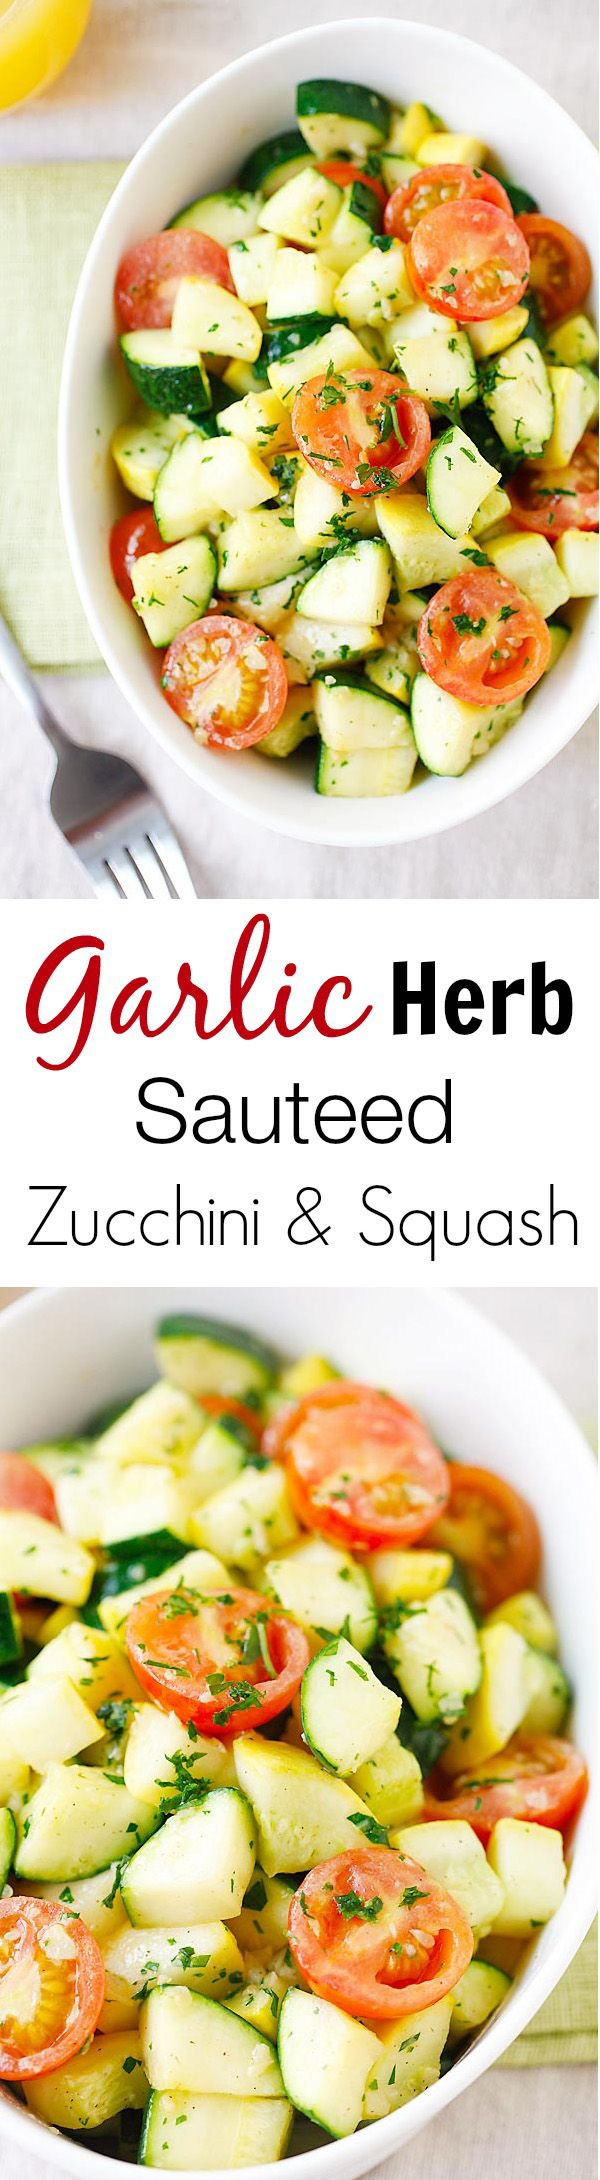 Garlic Herb Sauteed Zucchini and Squash - the healthiest and freshest side dish EVER with zucchini and squash, sauteed with garlic herb butter   rasamalaysia.com